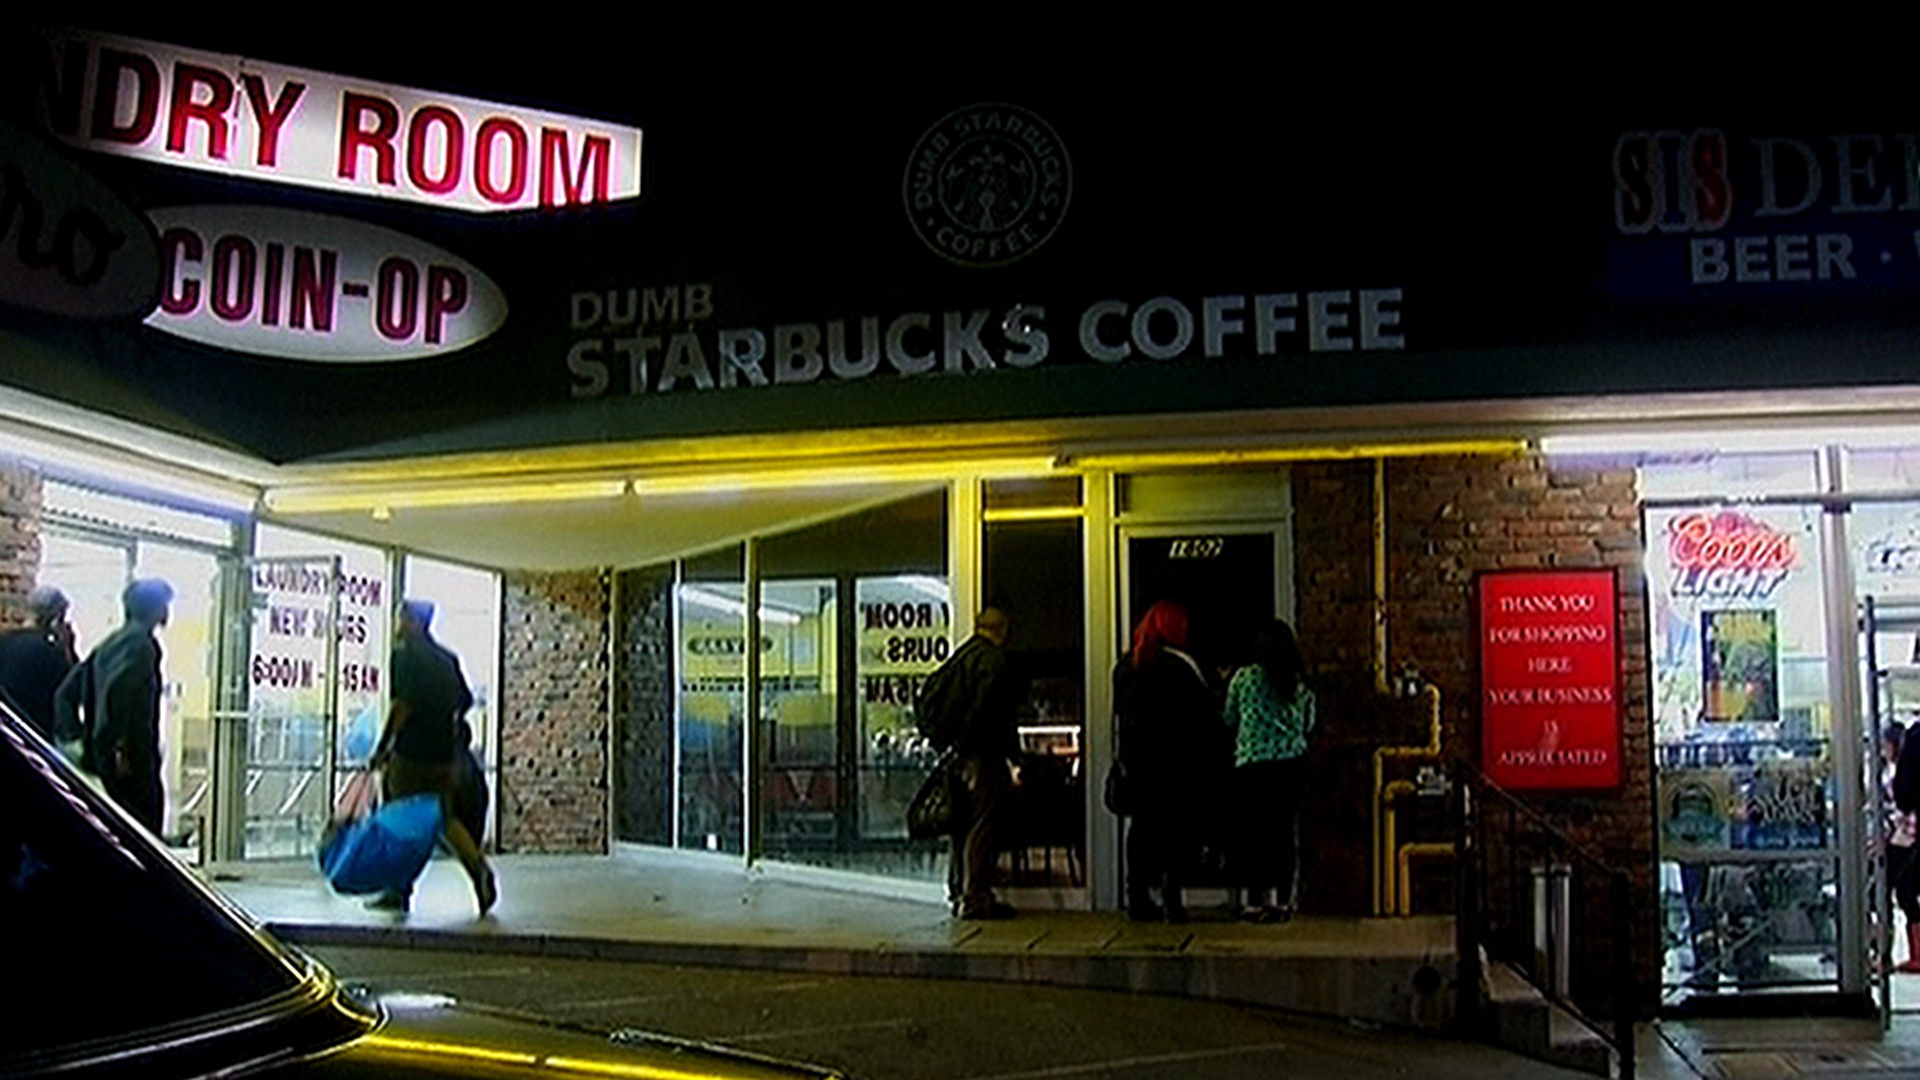 'Dumb Starbucks' Prank Shut Down By L.A. Health Department